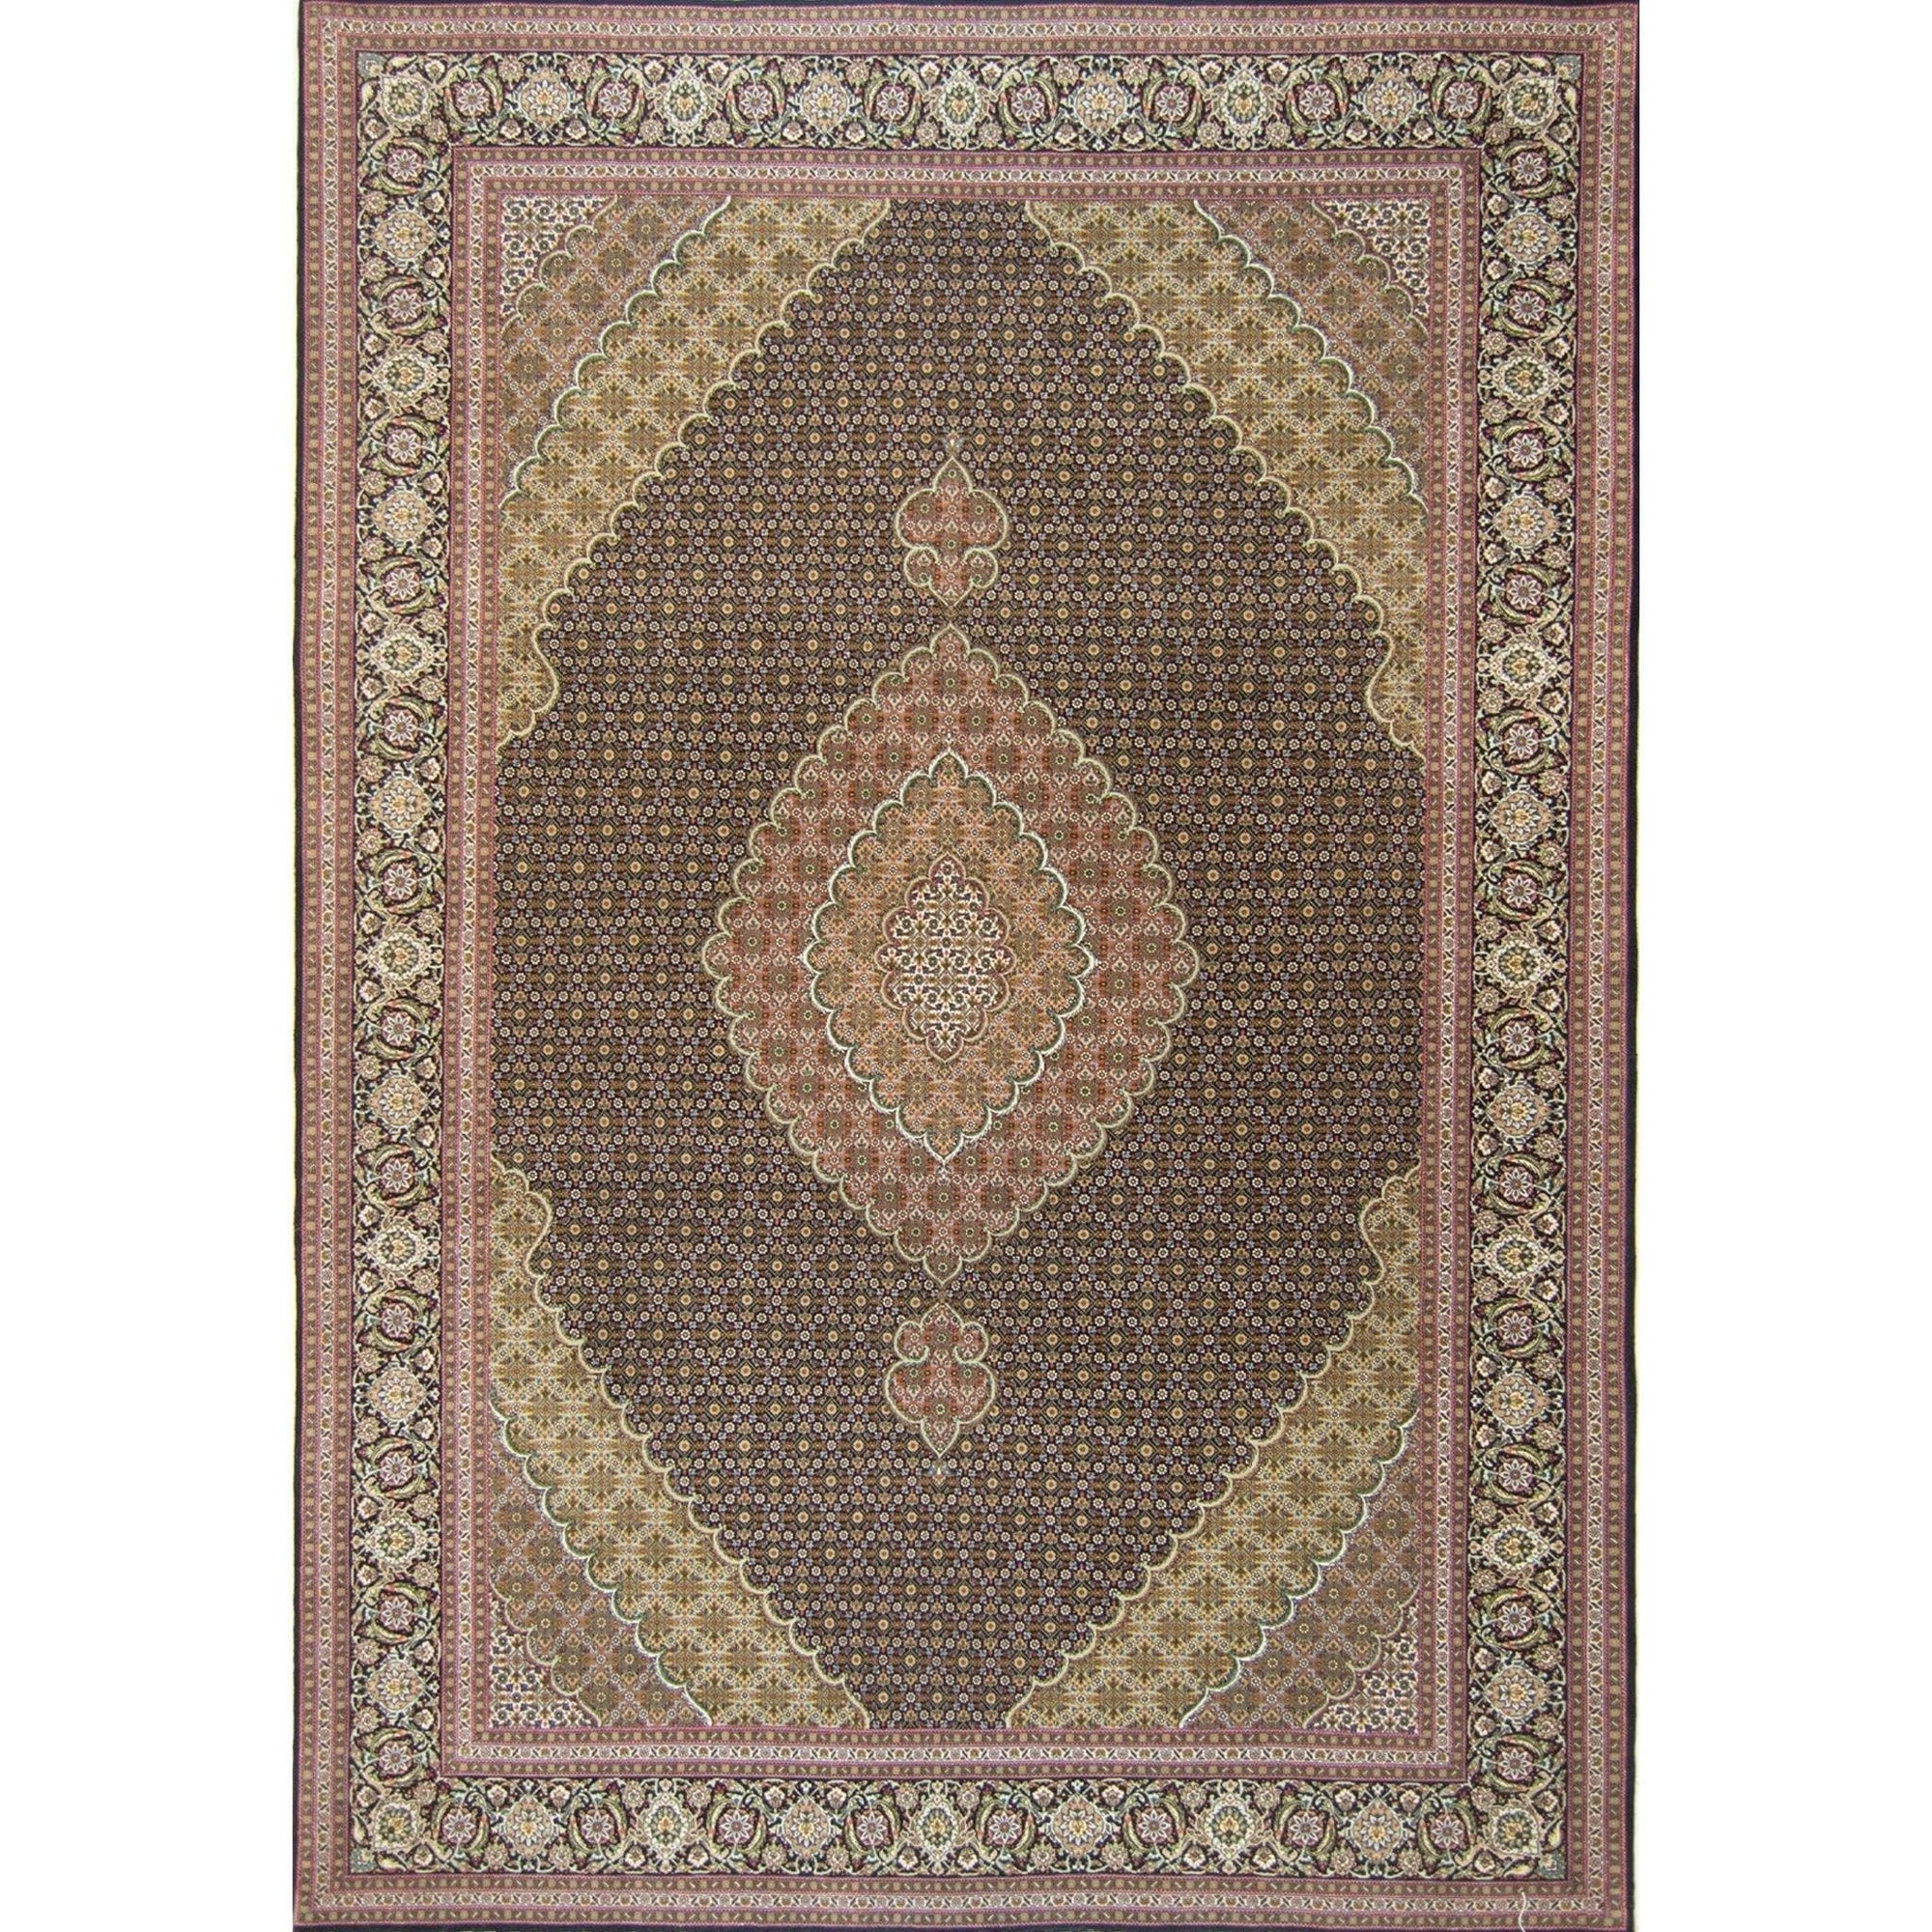 Super Fine Hand-knotted Persian Wool and Silk Tabriz - Mahi Rug 205 cm x 296 cm Persian-Rug | House-of-Haghi | NewMarket | Auckland | NZ | Handmade Persian Rugs | Hand Knotted Persian Rugs